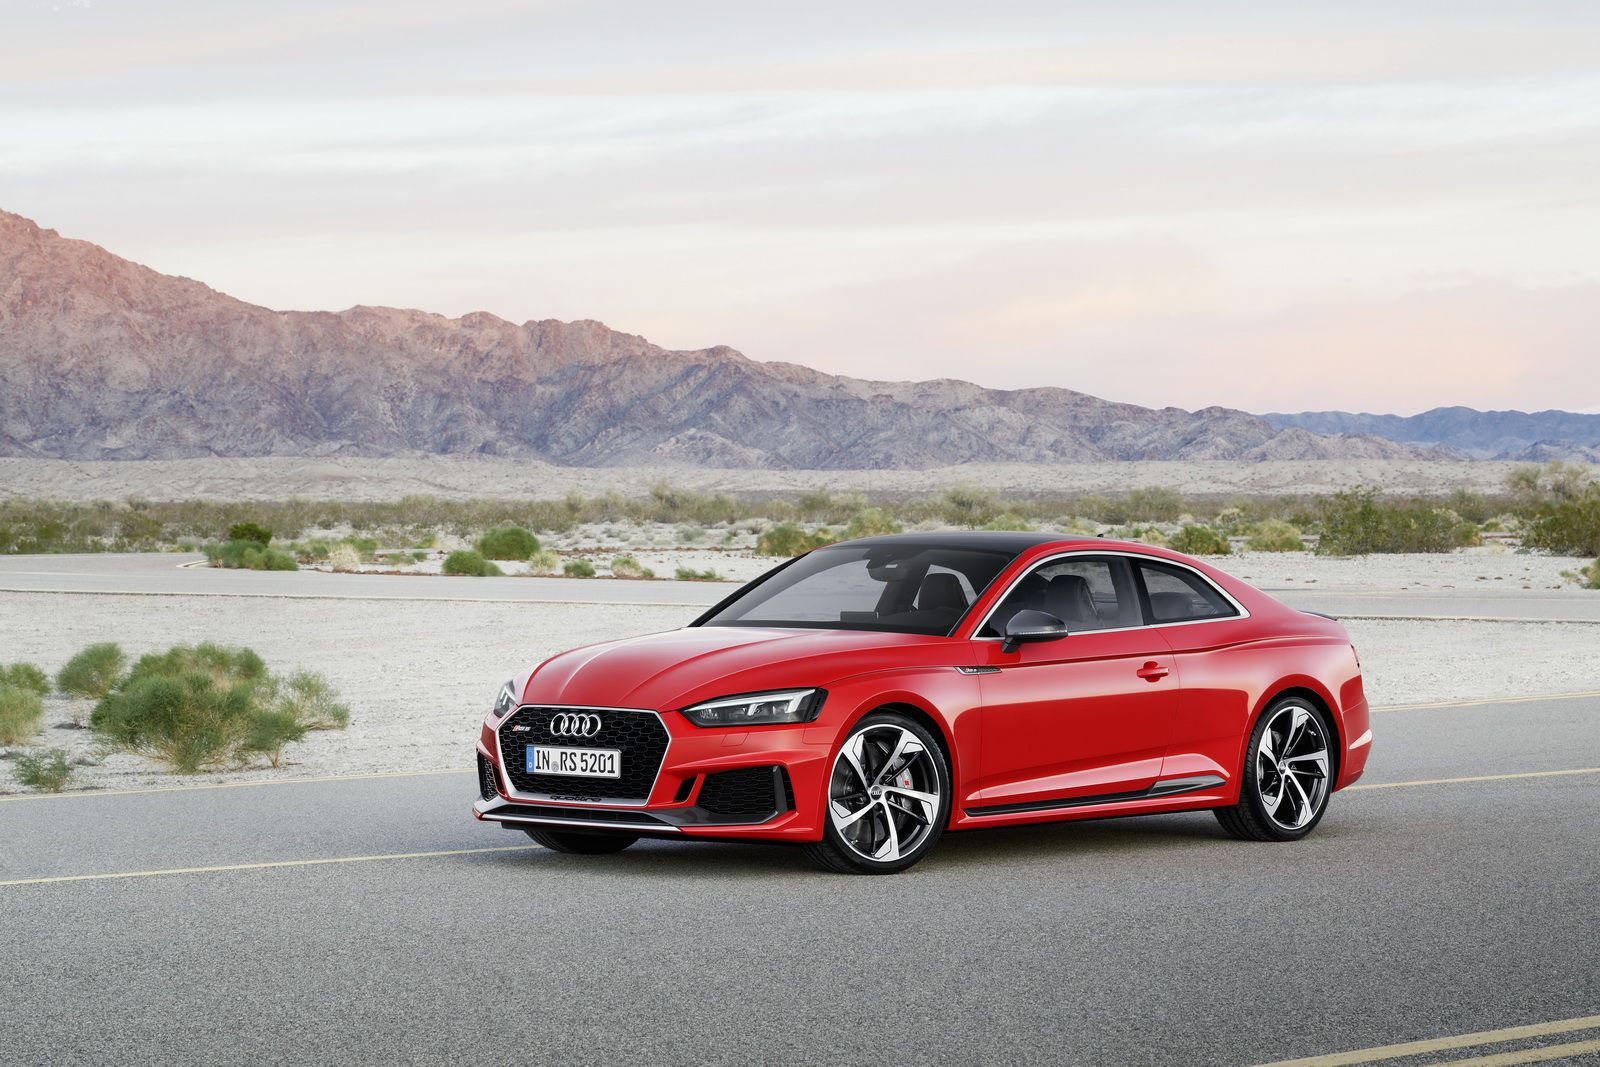 2017 Audi Rs5 Coupe Launched In Europe Priced From 80 900 Carscoops Audi Rs5 Rs5 Coupe Coupe